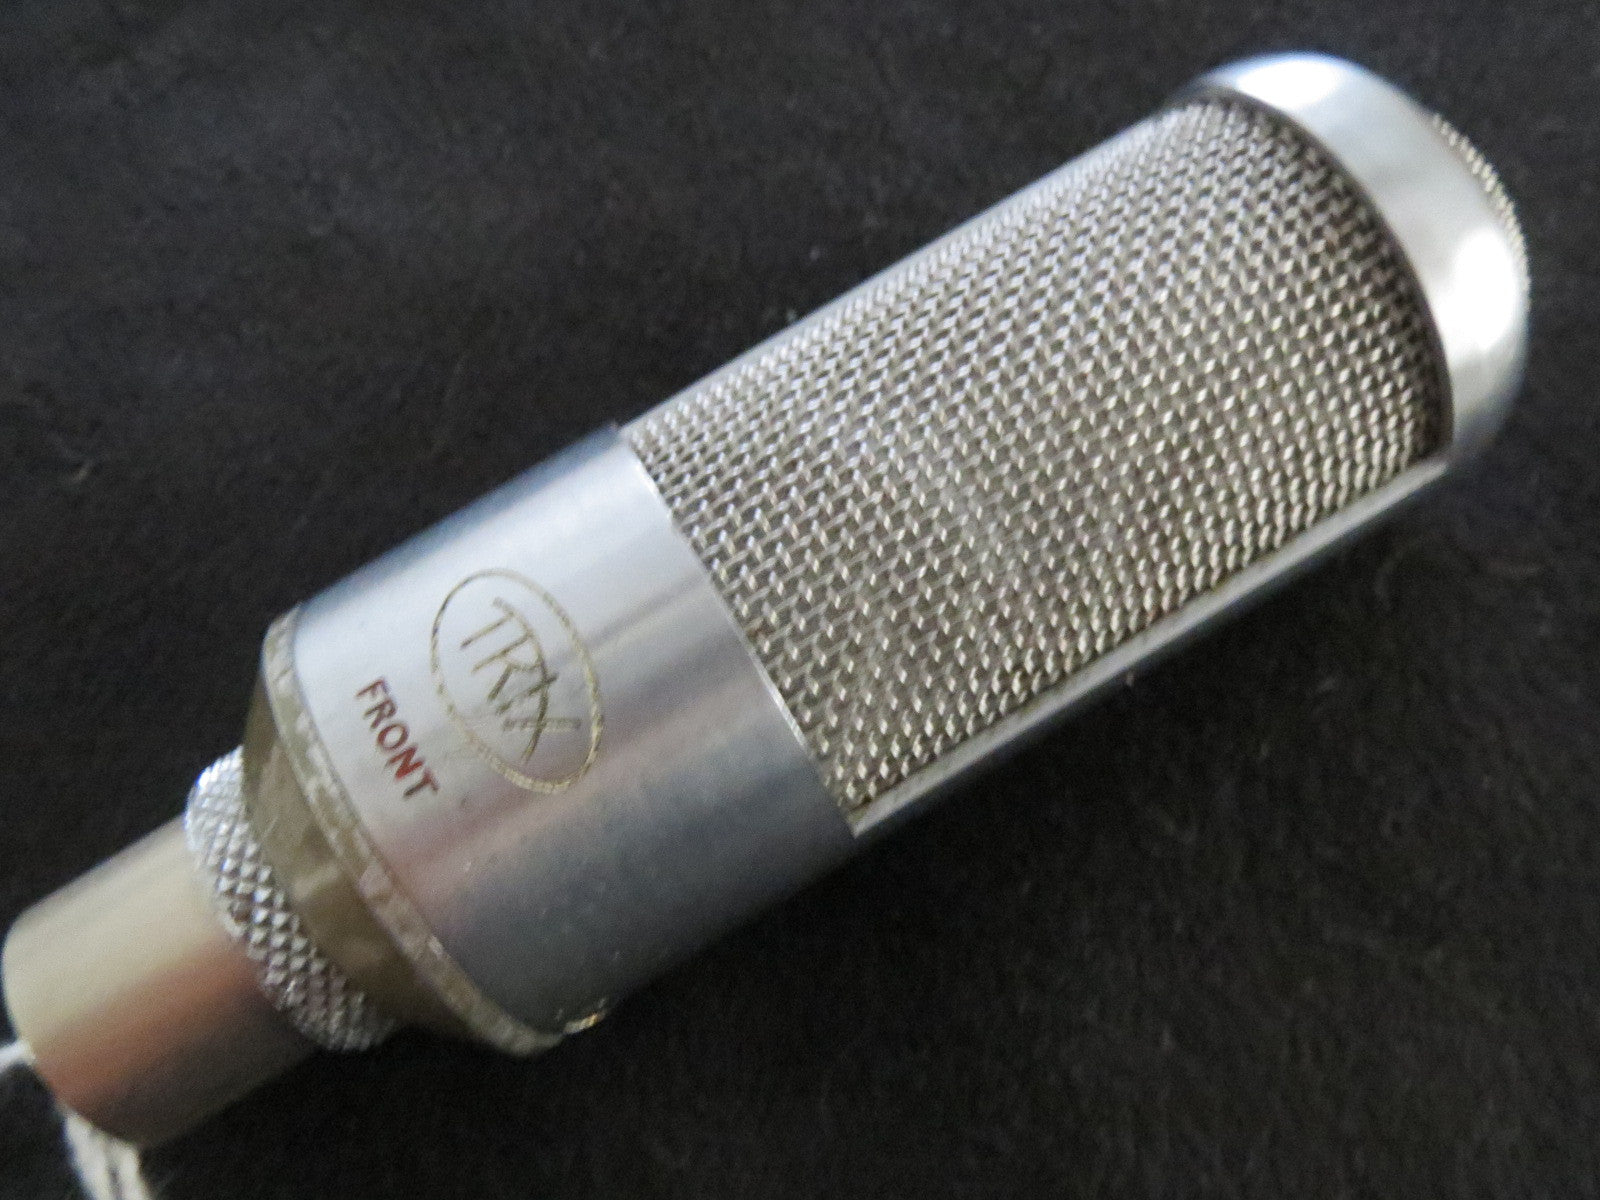 TRIX RARE VINTAGE BRITISH RIBBON MICROPHONE, updated with XLR connector